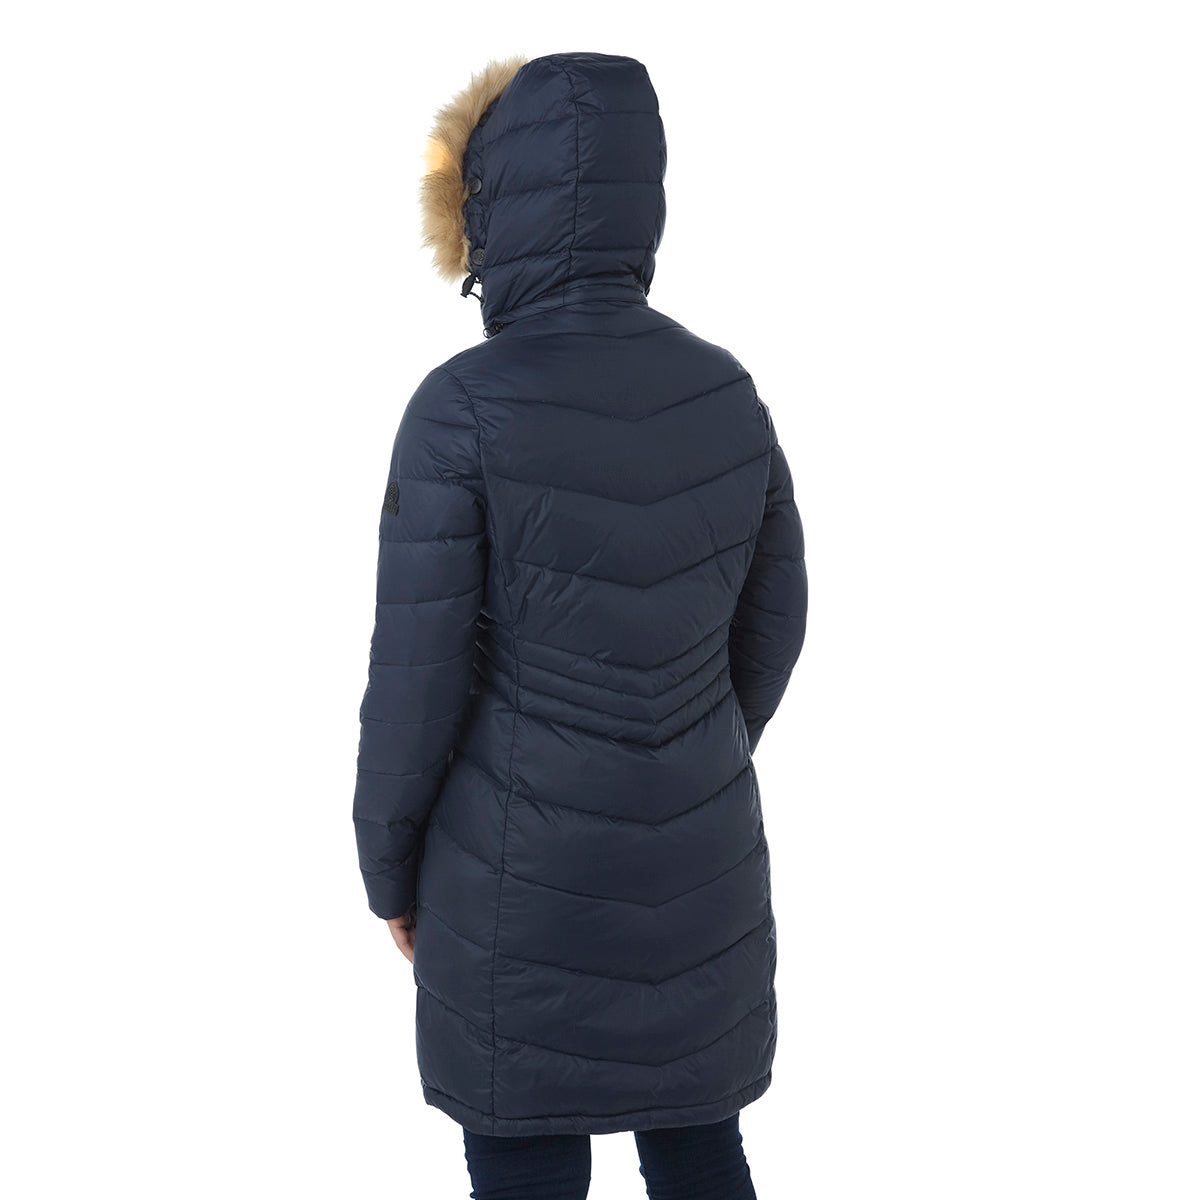 Buffy Womens Down Jacket - Navy image 4